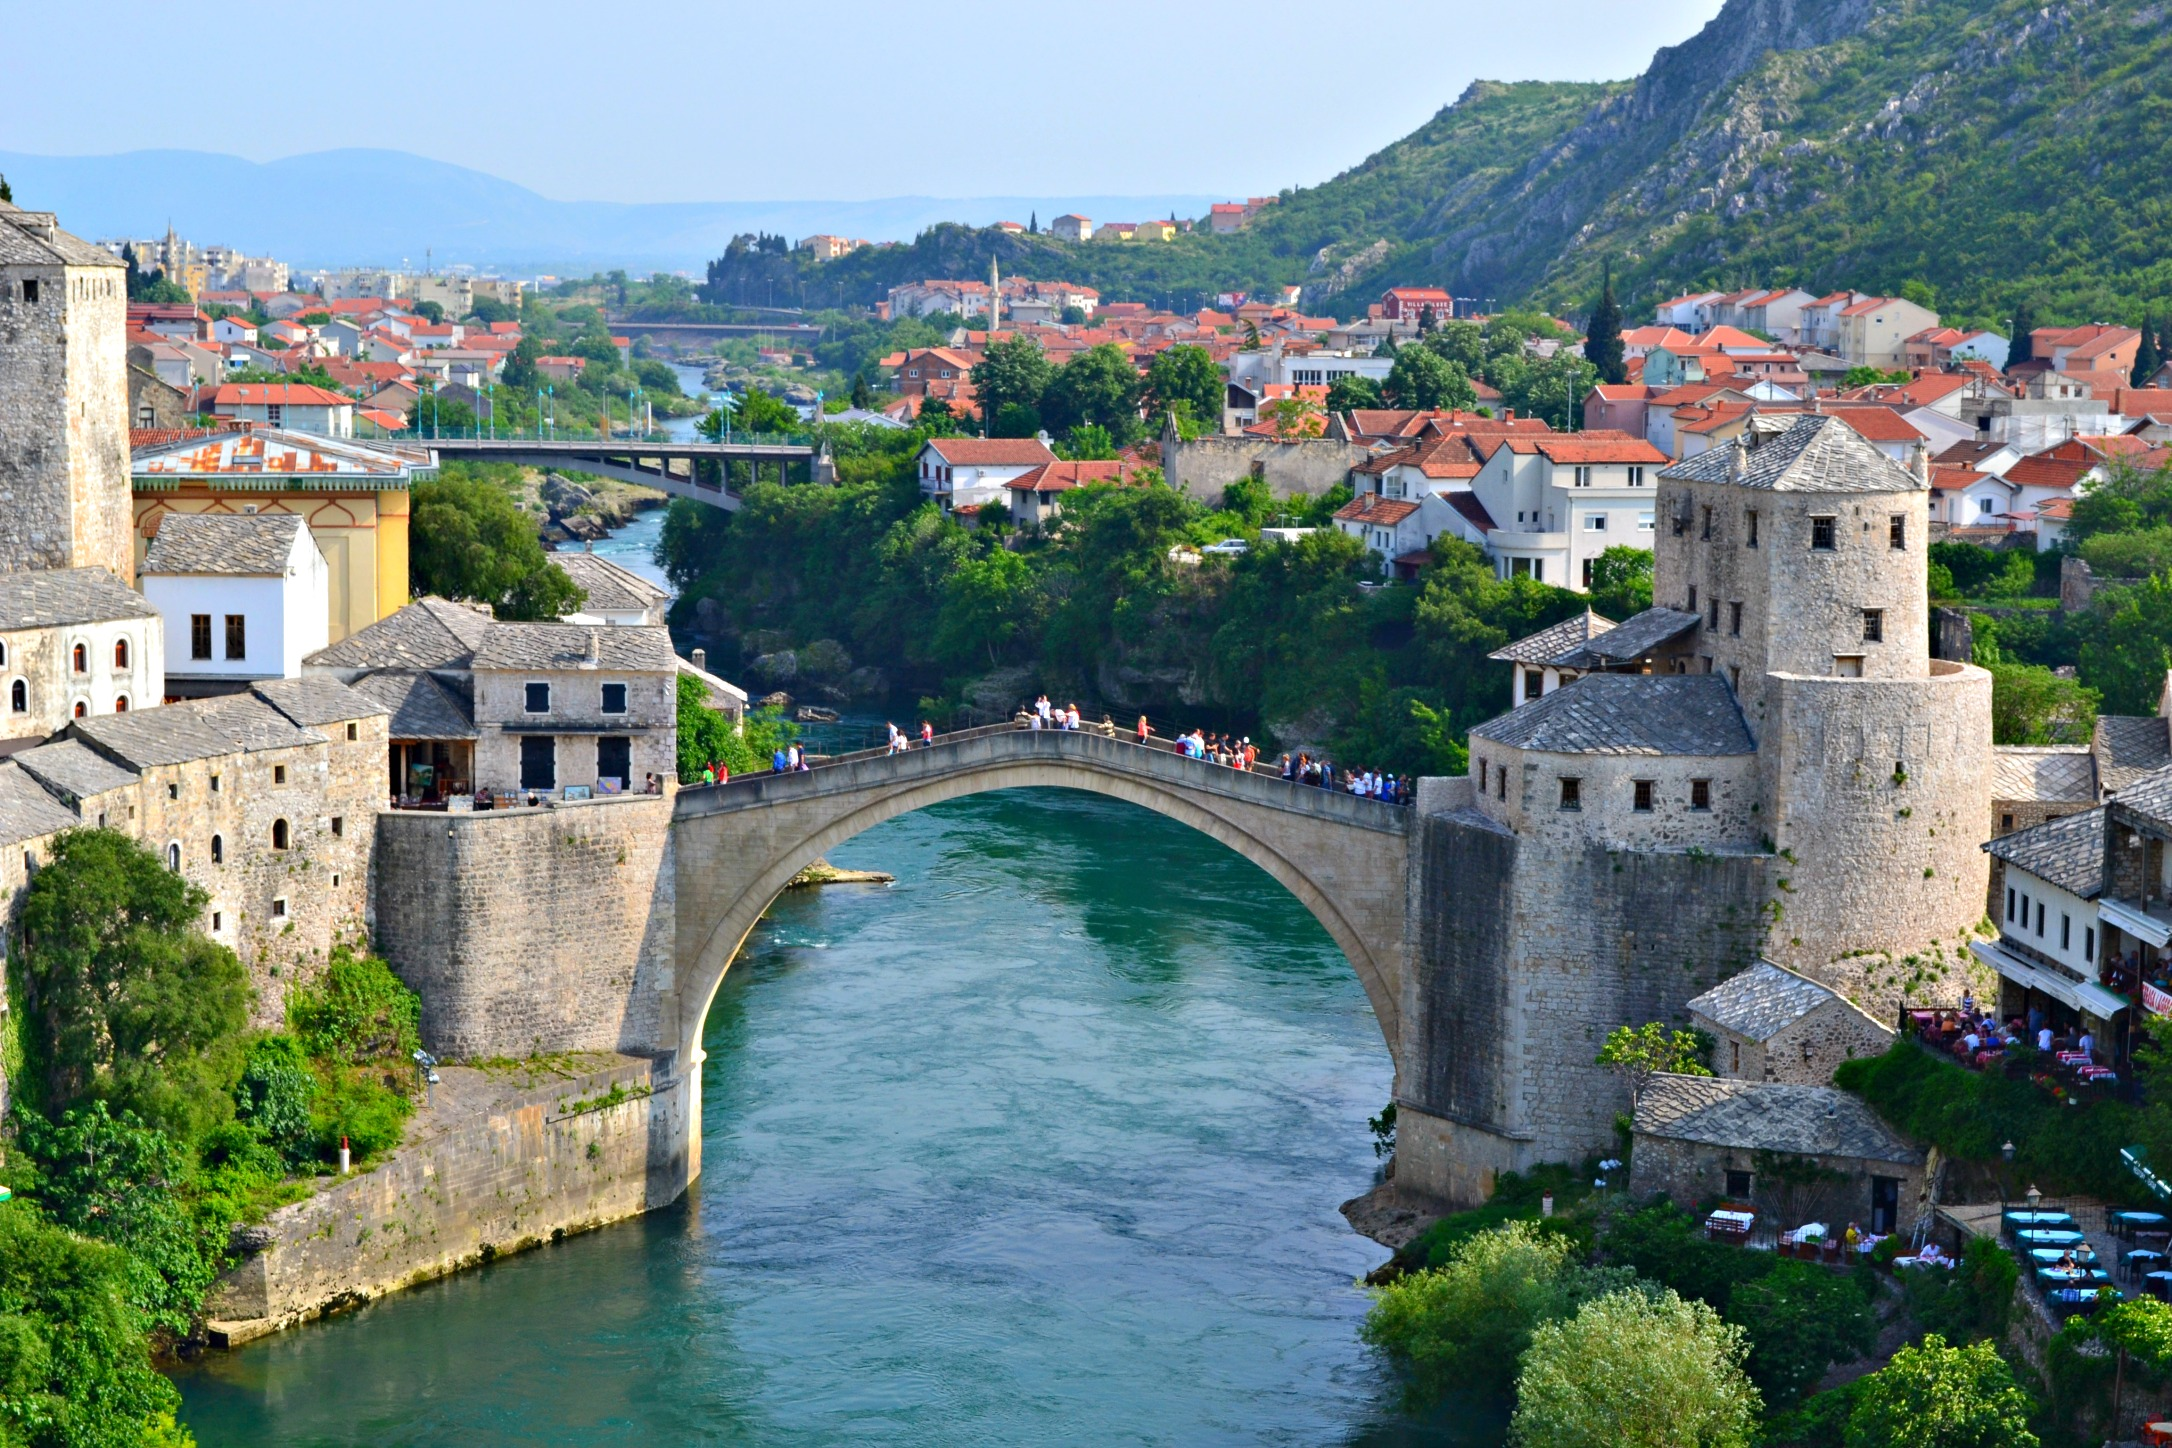 stari Most, Mostar Bridge viewpoint, Bosnia and Herzegovina